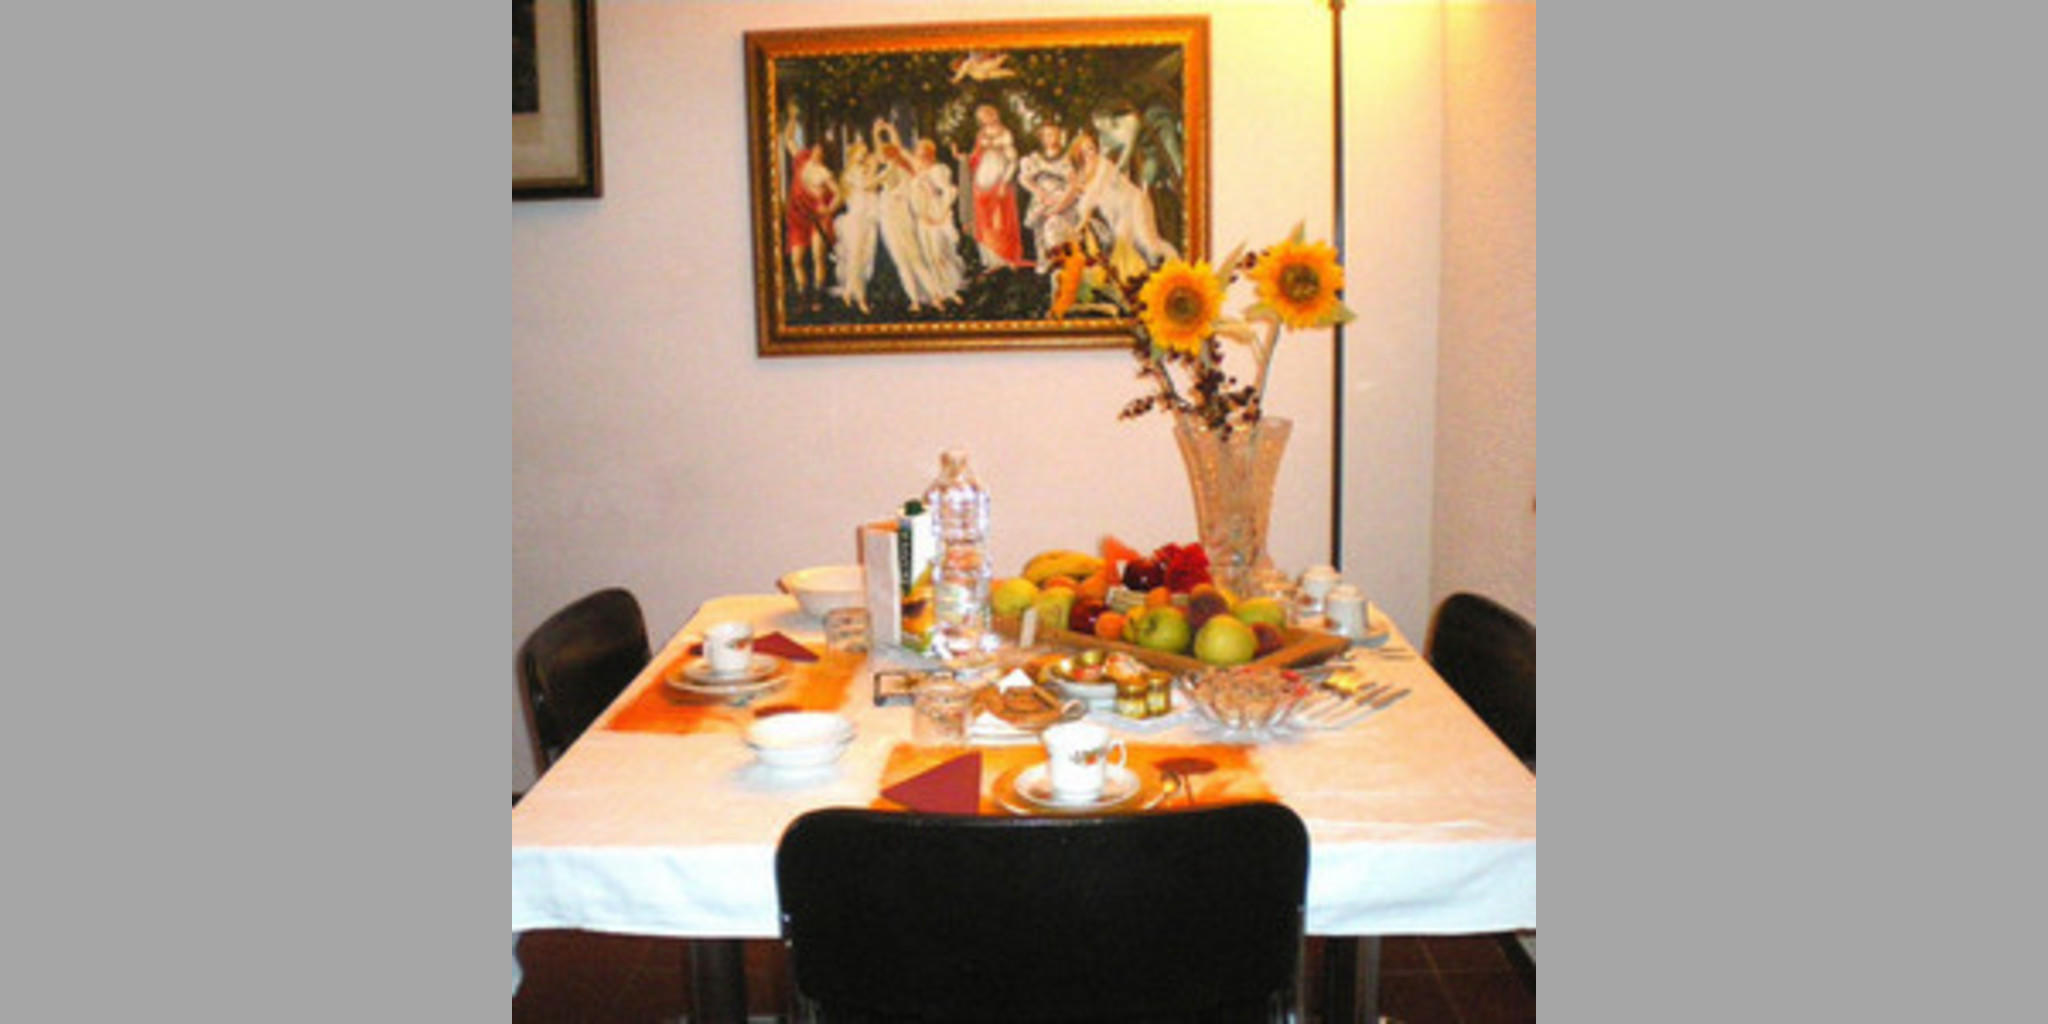 Bed & Breakfast Cascina - Casciavola